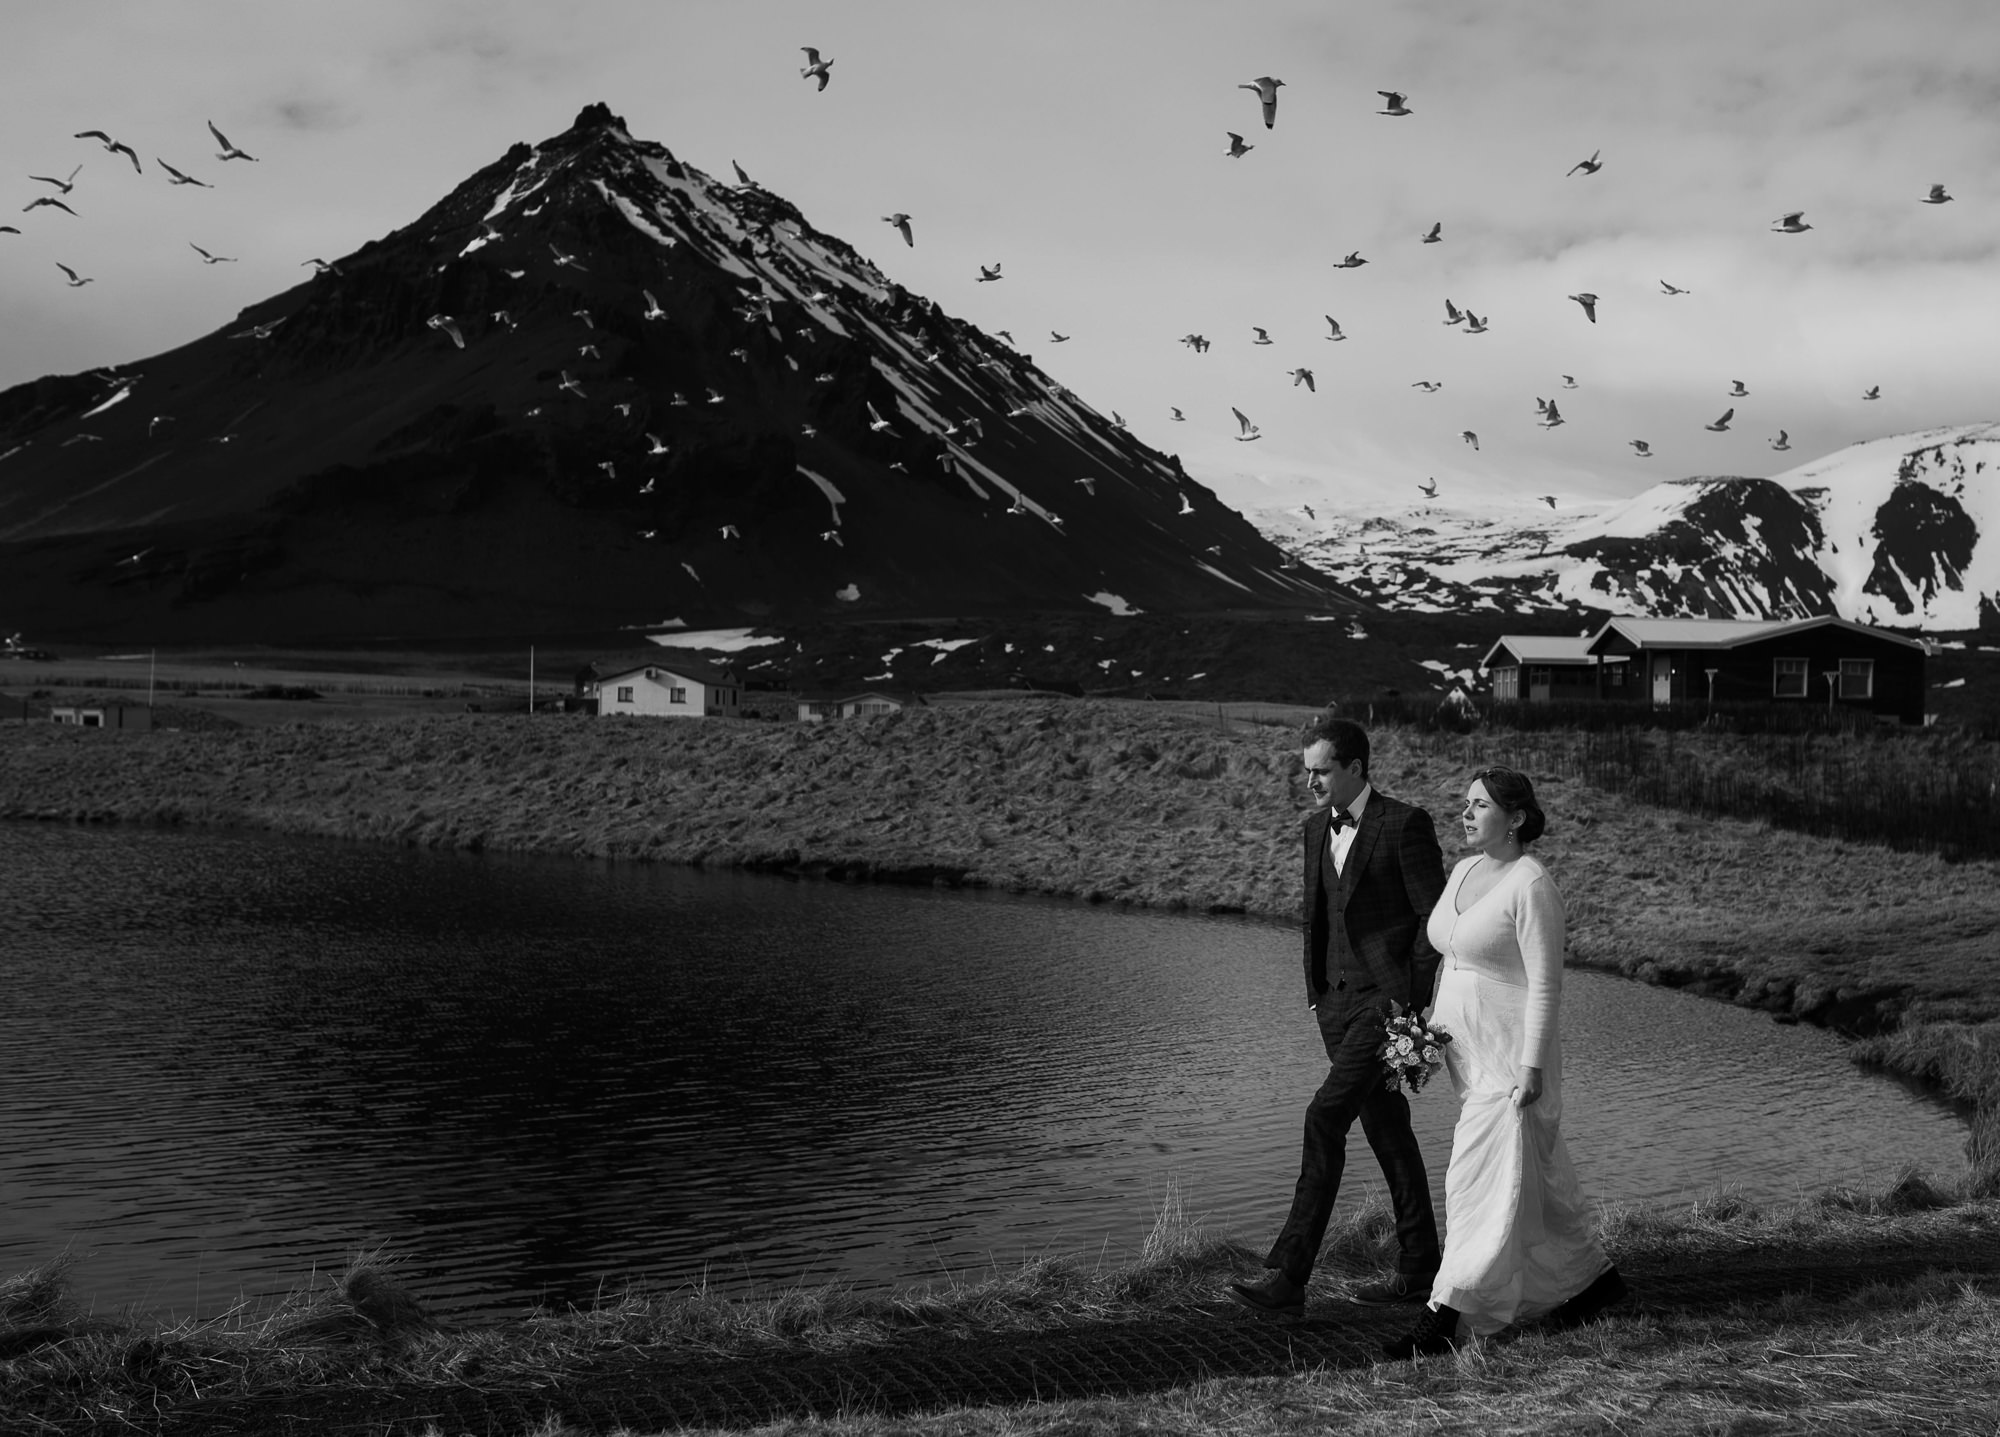 Couple portrait against mountains photo by Nordica Photography